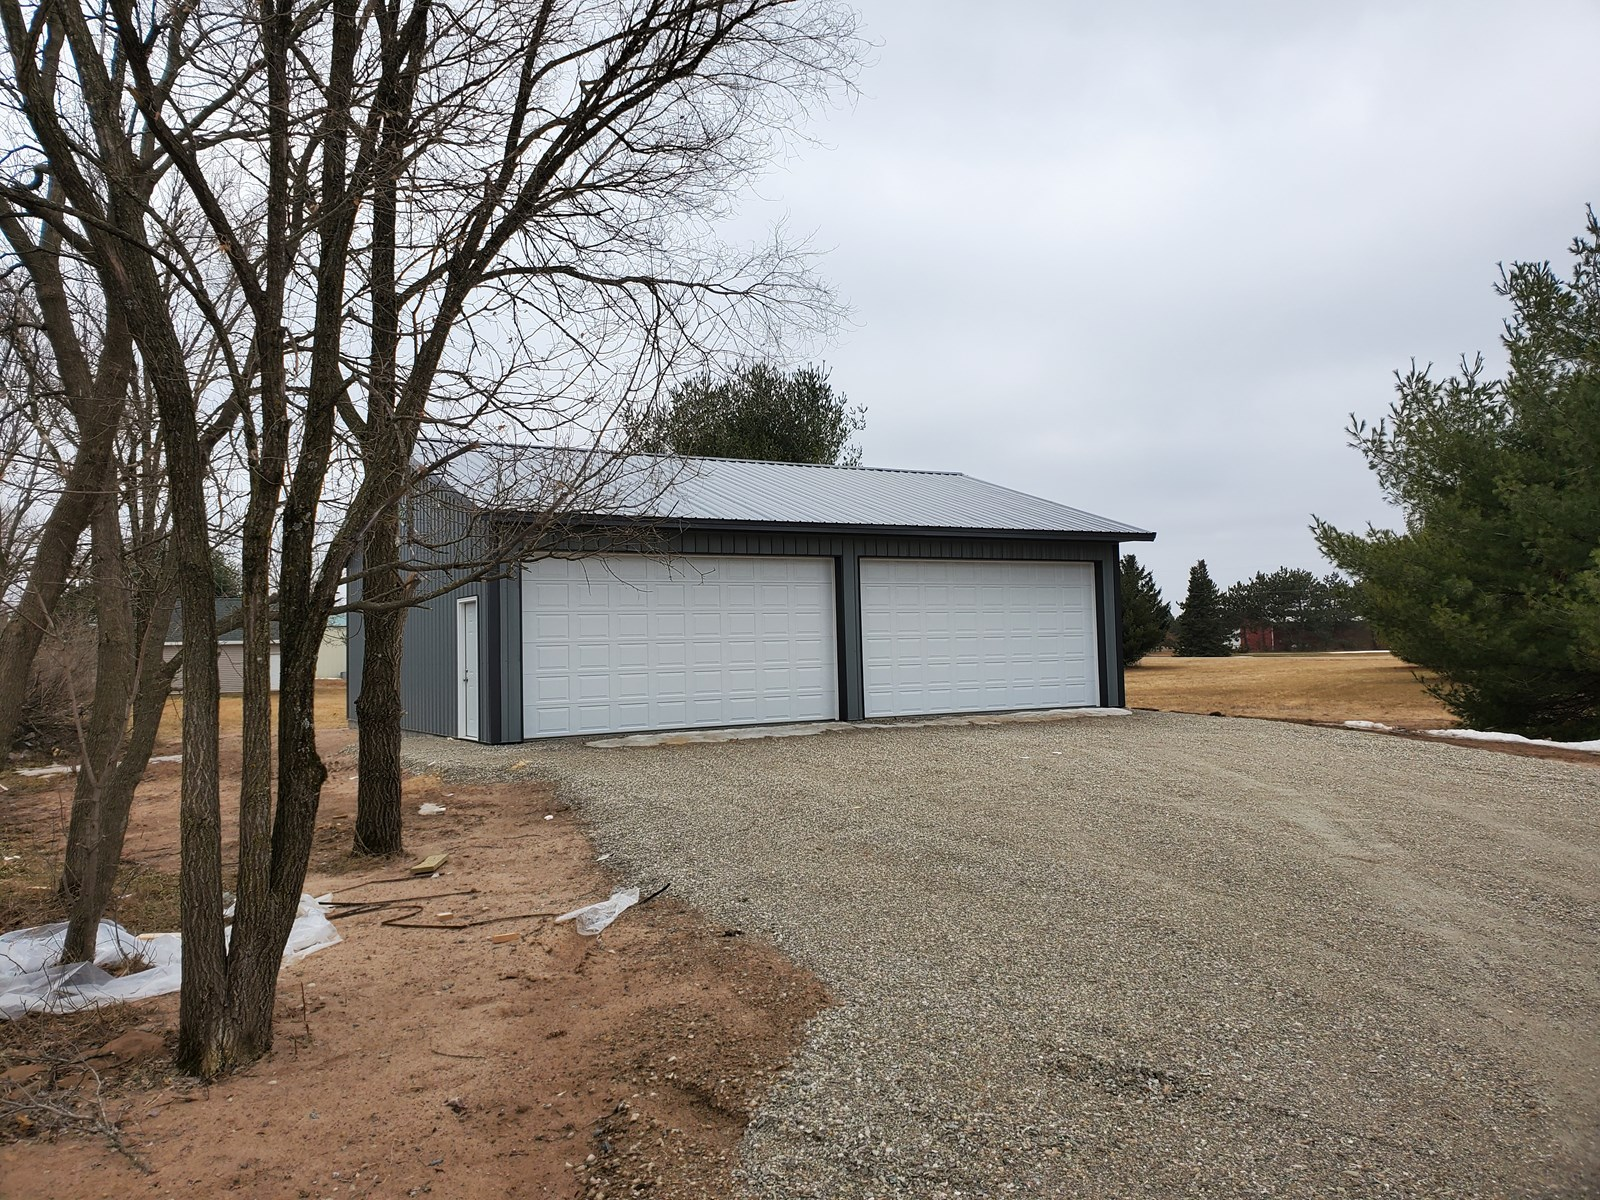 Land for Sale with Storage Shed in Waupaca, WI